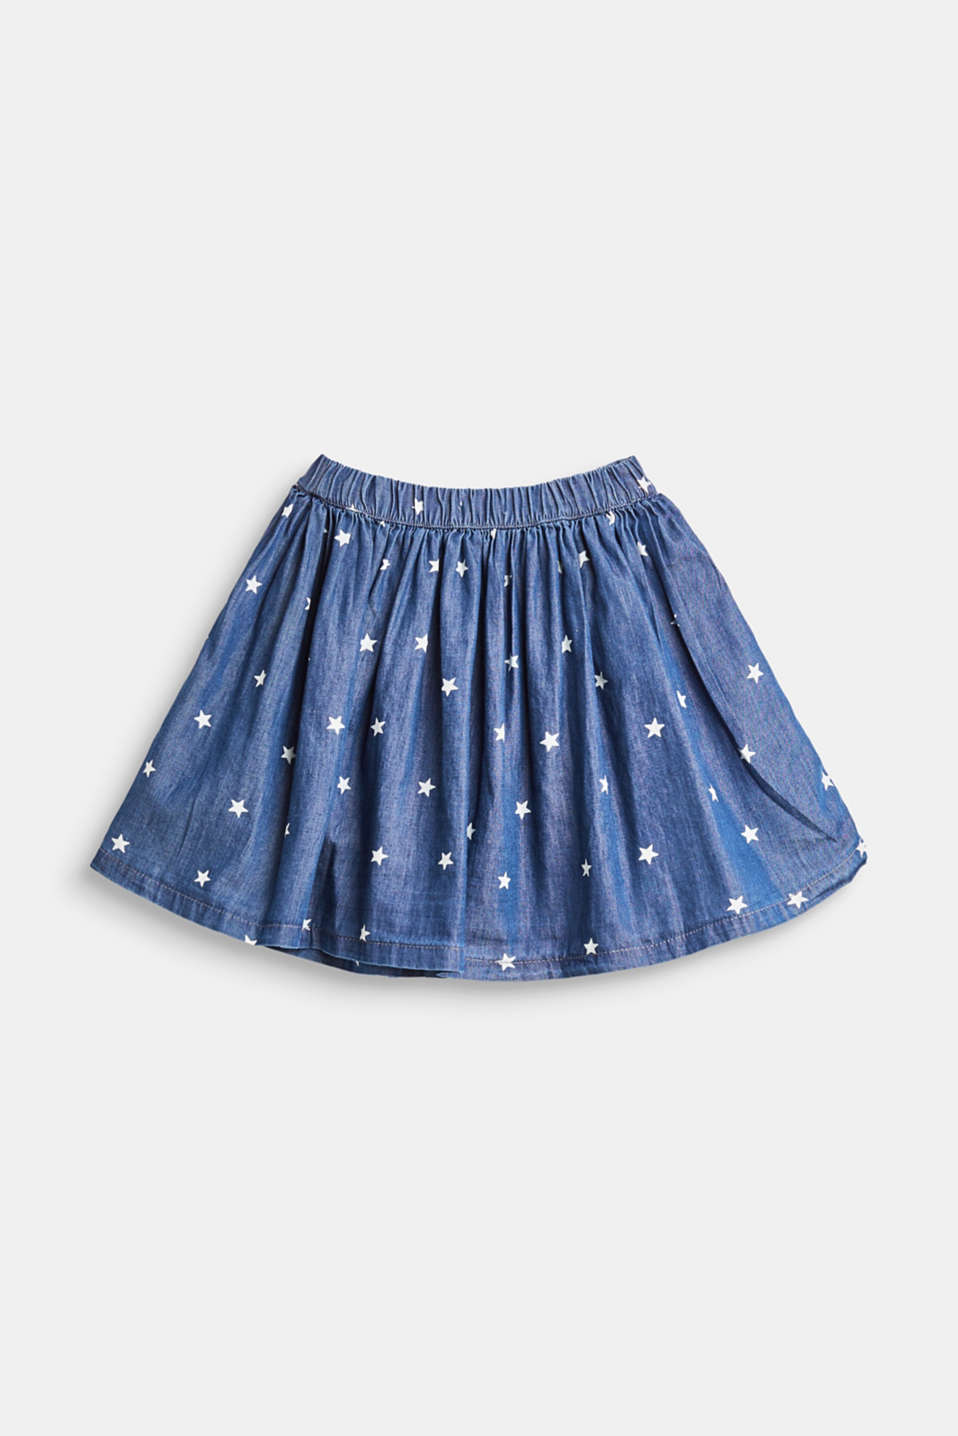 Denim skirt with a star print, 100% cotton